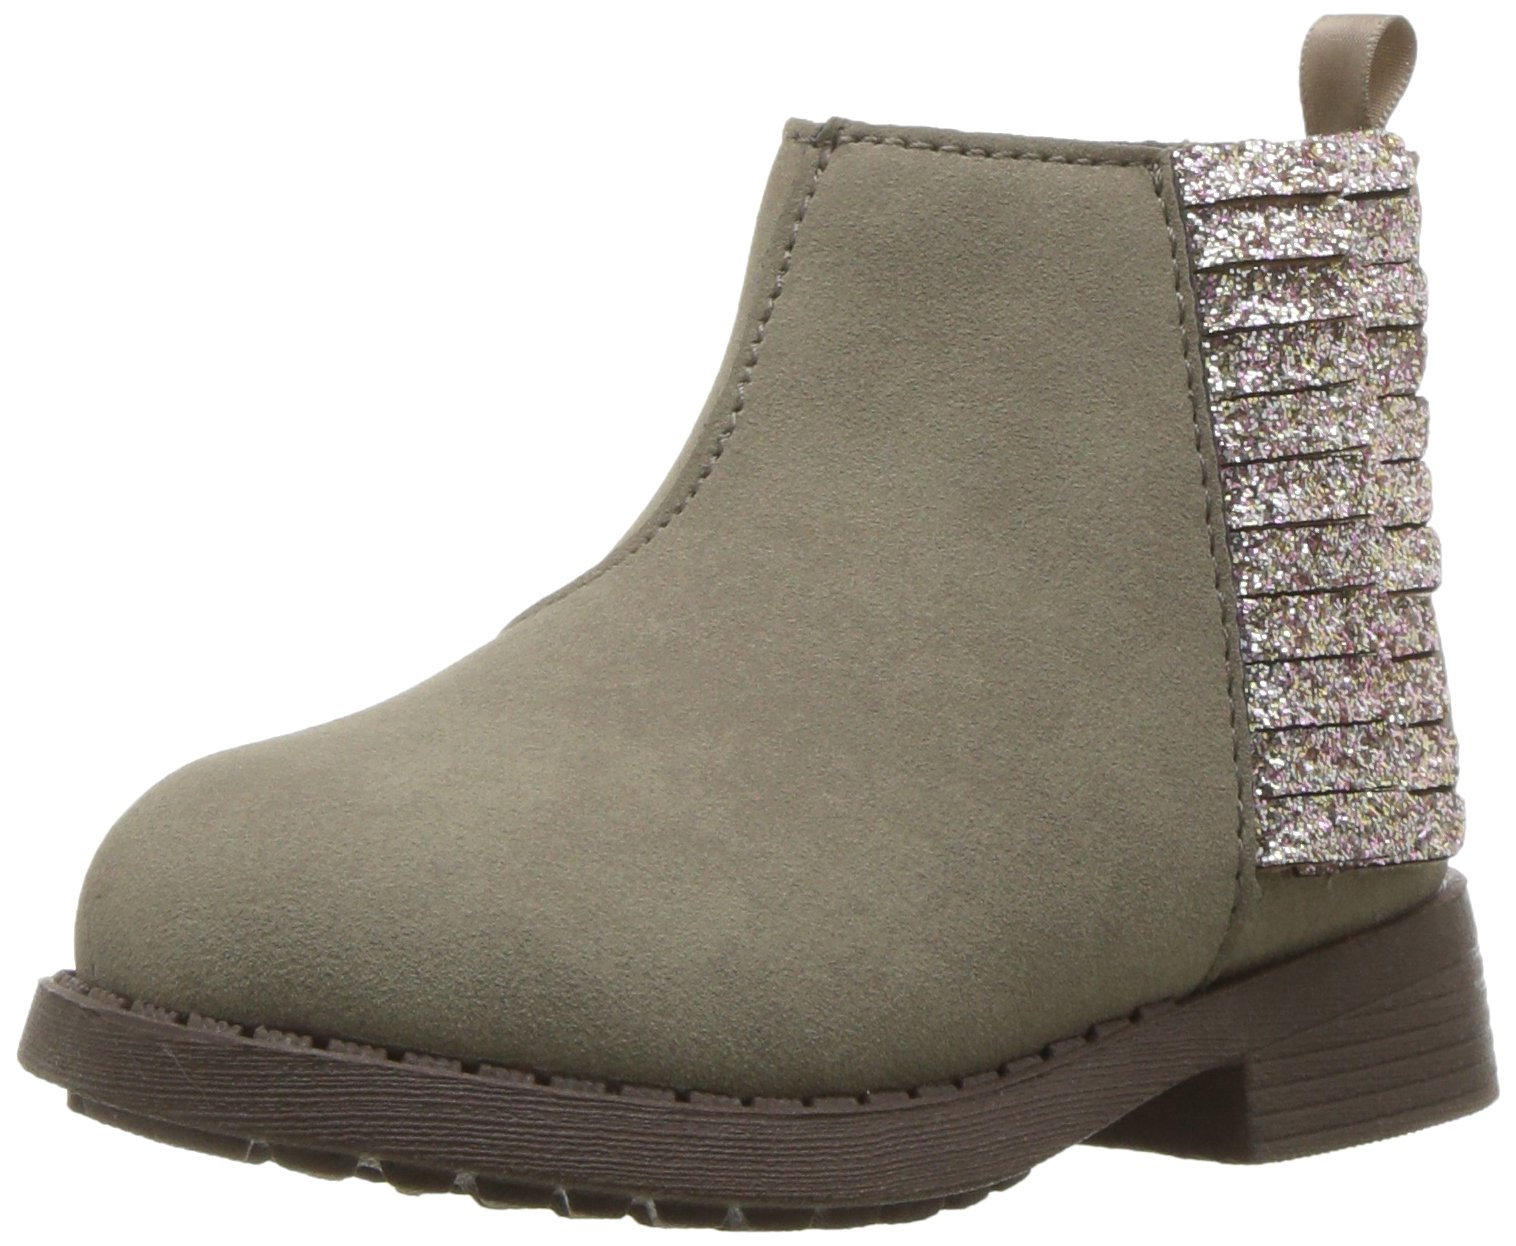 OshKosh B'Gosh Girls' Alice Fringe Ankle Boot, Taupe, 12 M US Little Kid